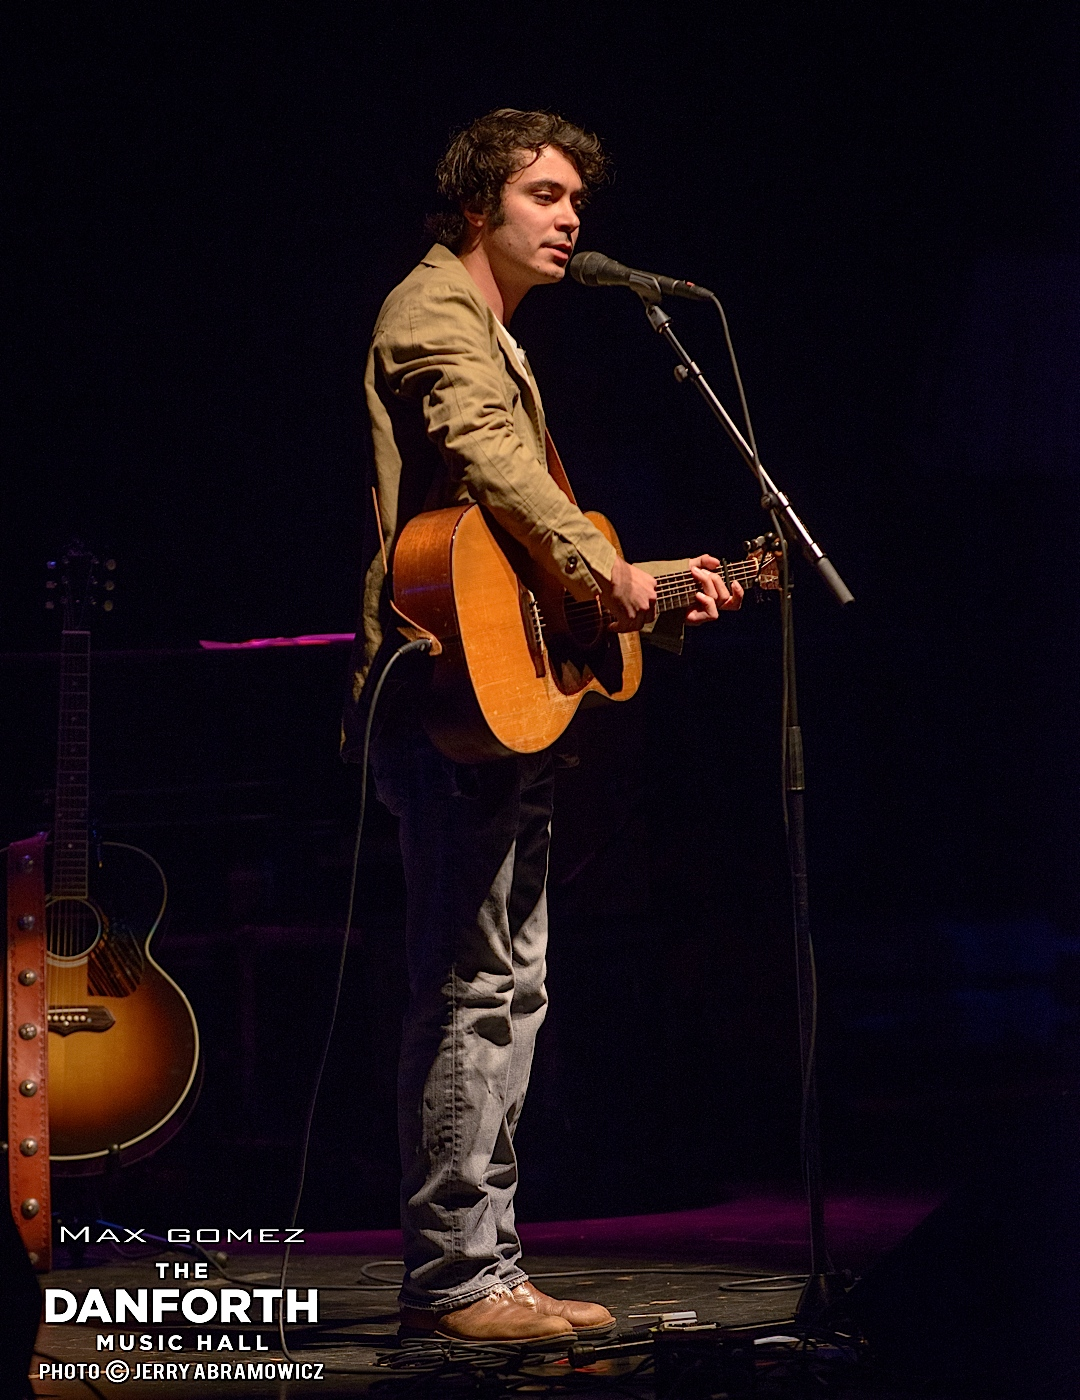 20130611 Max Gomez performs at The Danforth Music Hall Toronto 0018